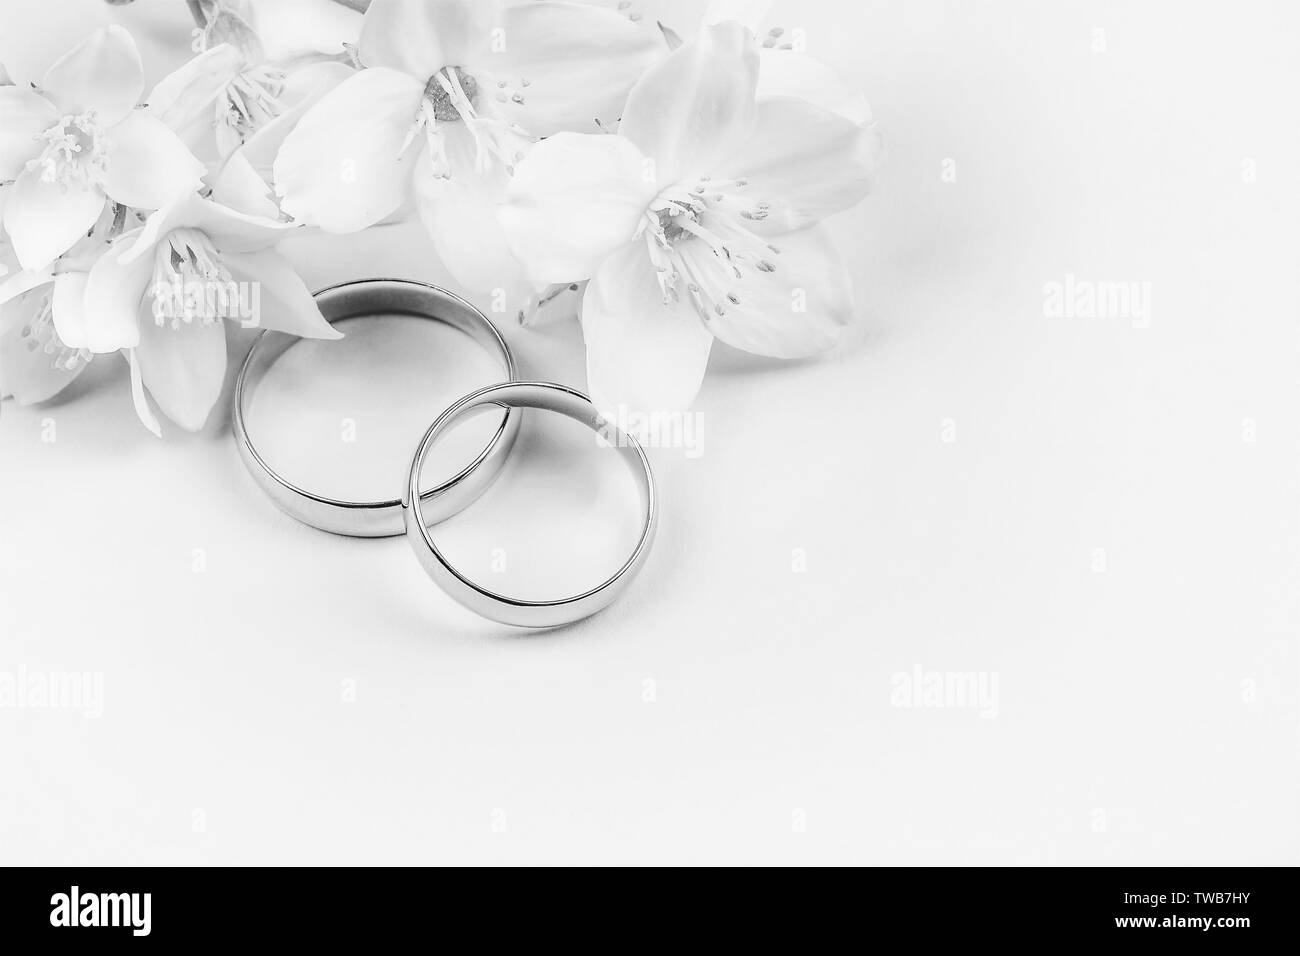 pair of gold wedding rings and white Jasmine flowers on white background with copy space, black and white photo - Stock Image